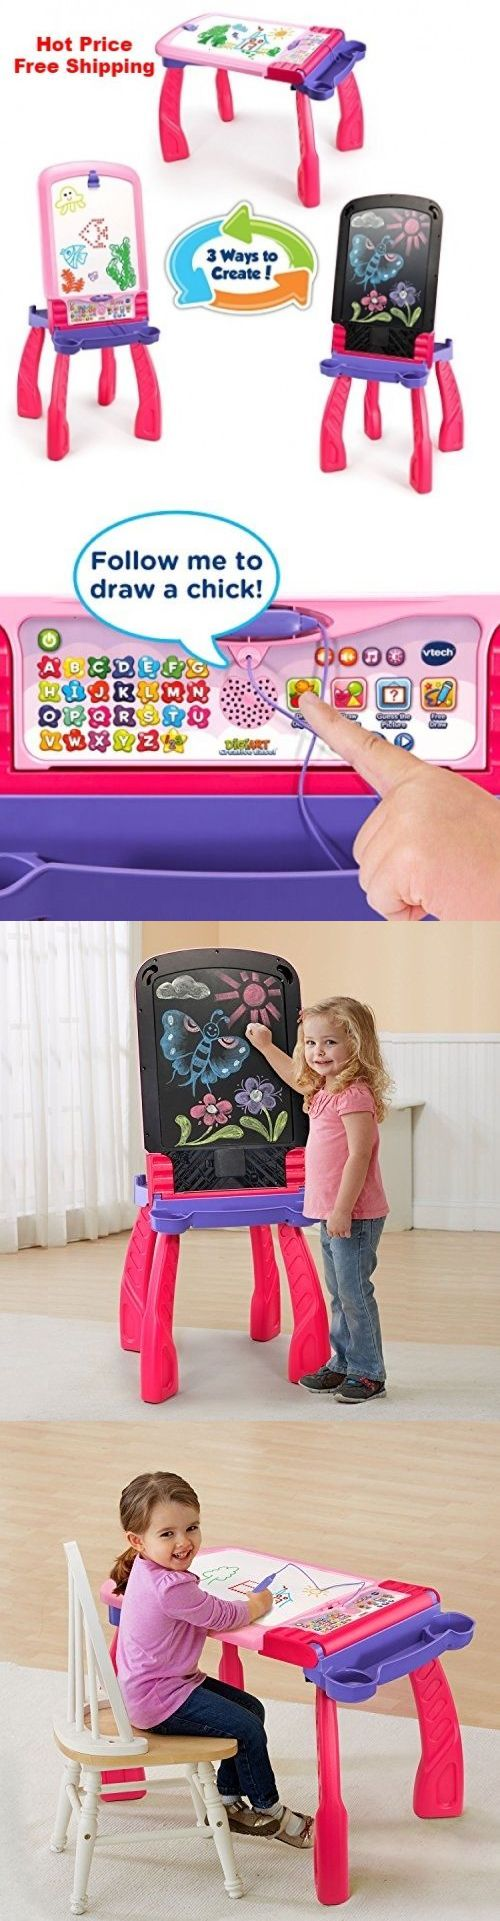 Learning Systems 158695: Easel Digiart Creative Vtech Free Packaging Frustration New Pink Regular Table -> BUY IT NOW ONLY: $34.58 on eBay!